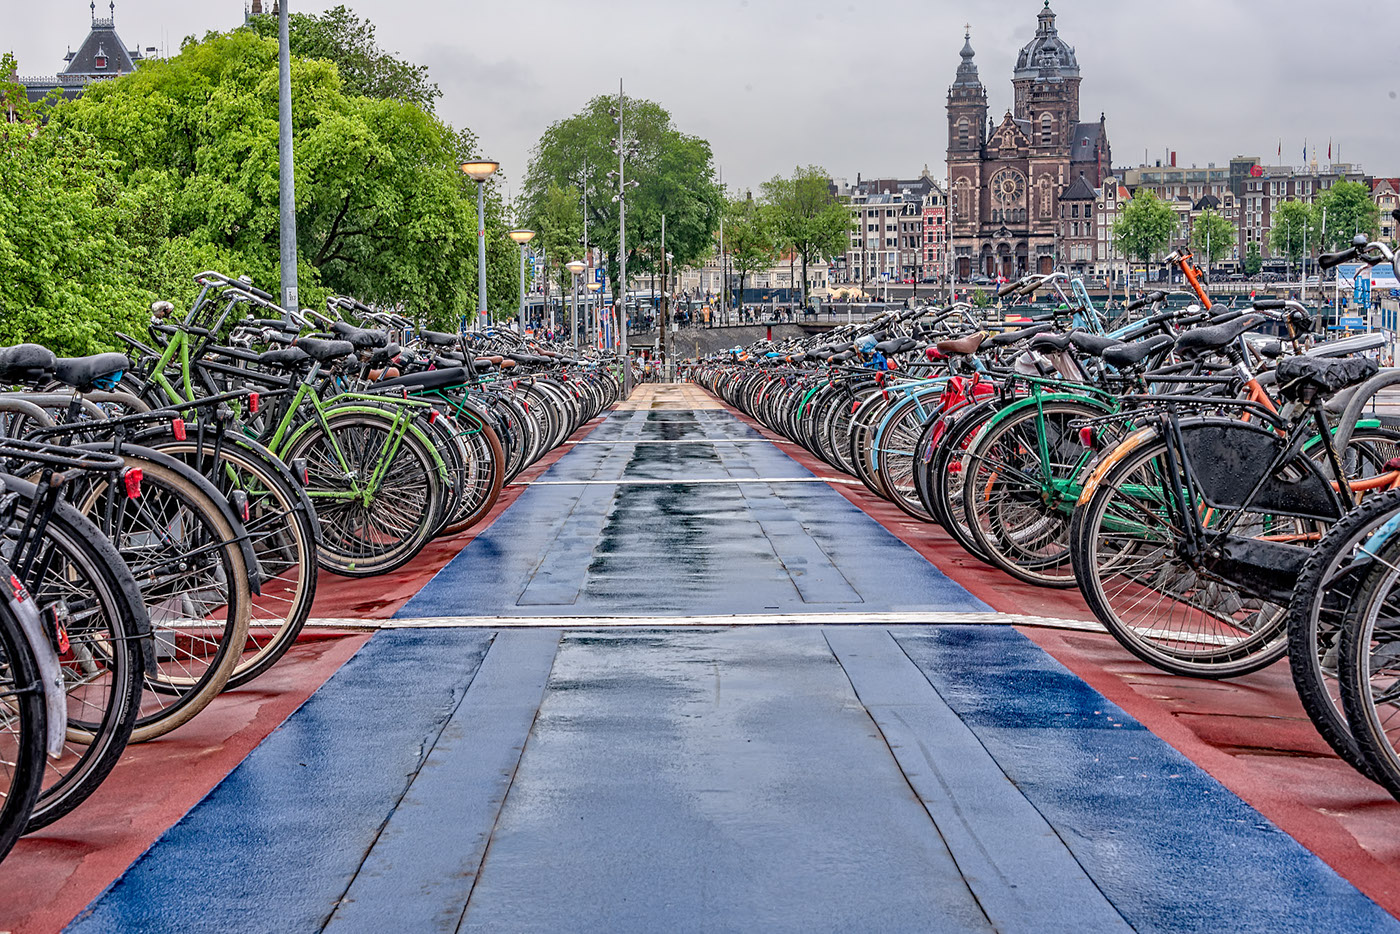 amsterdam Bicycles canals train station